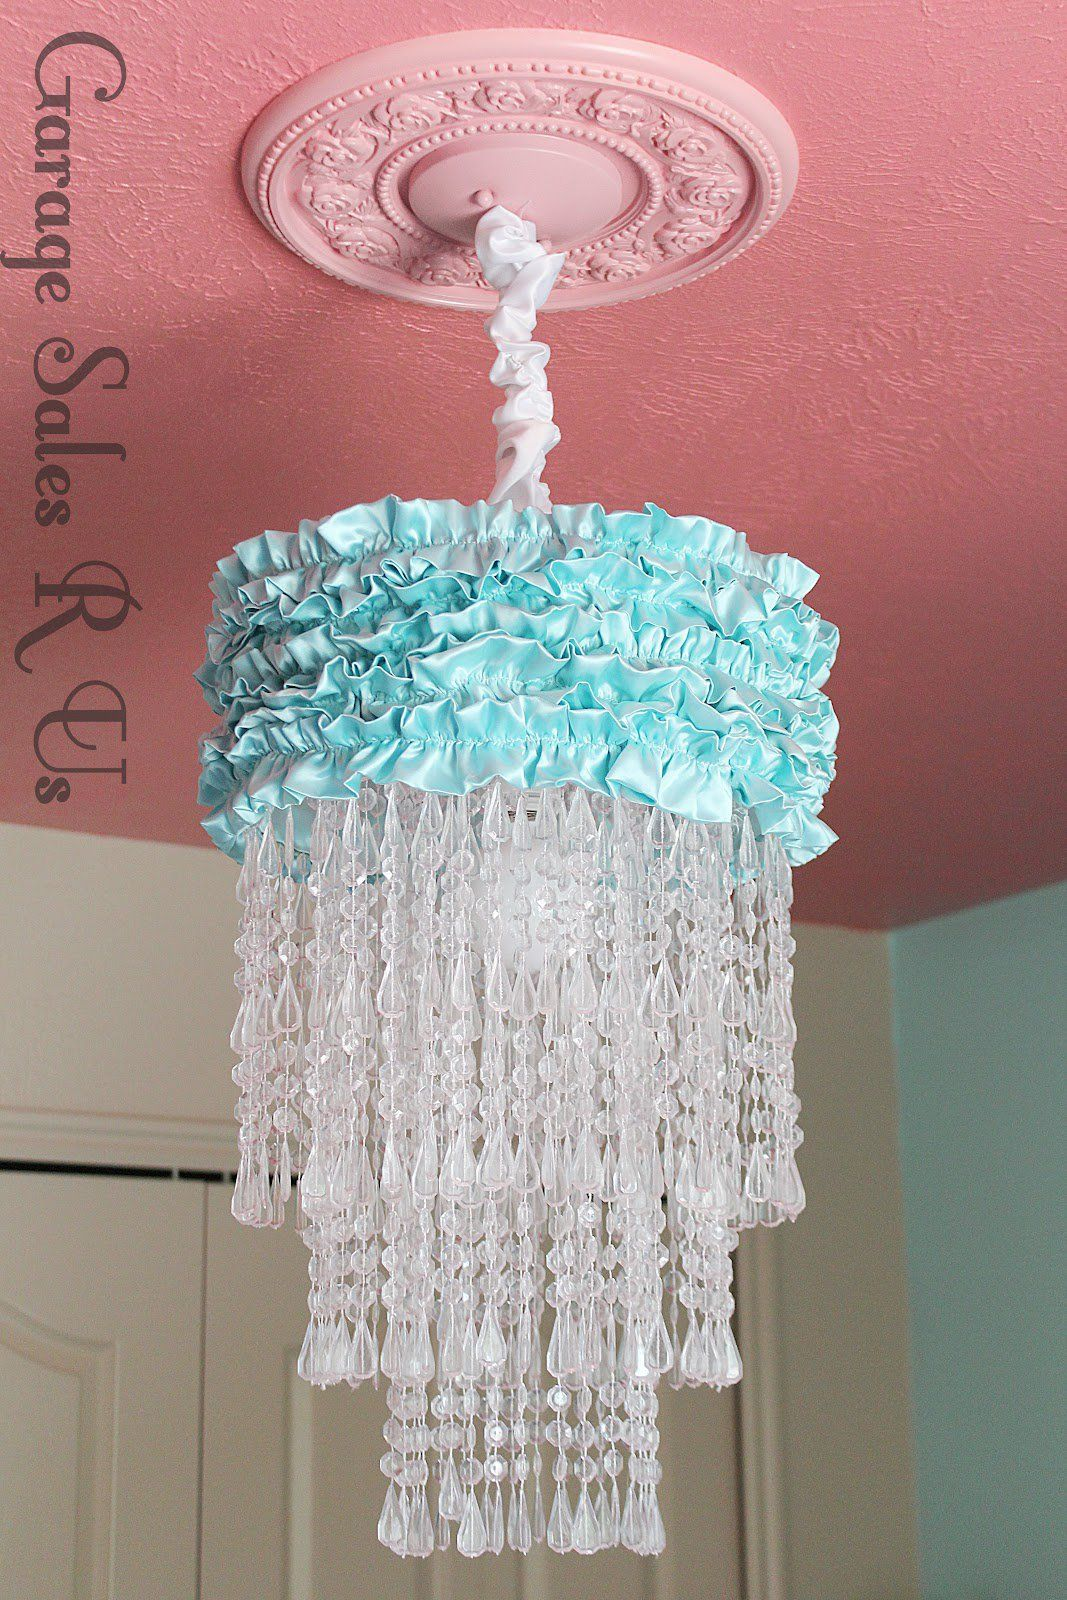 How to make a homemade chandelier from scratch 25 different diy 5 aloadofball Choice Image